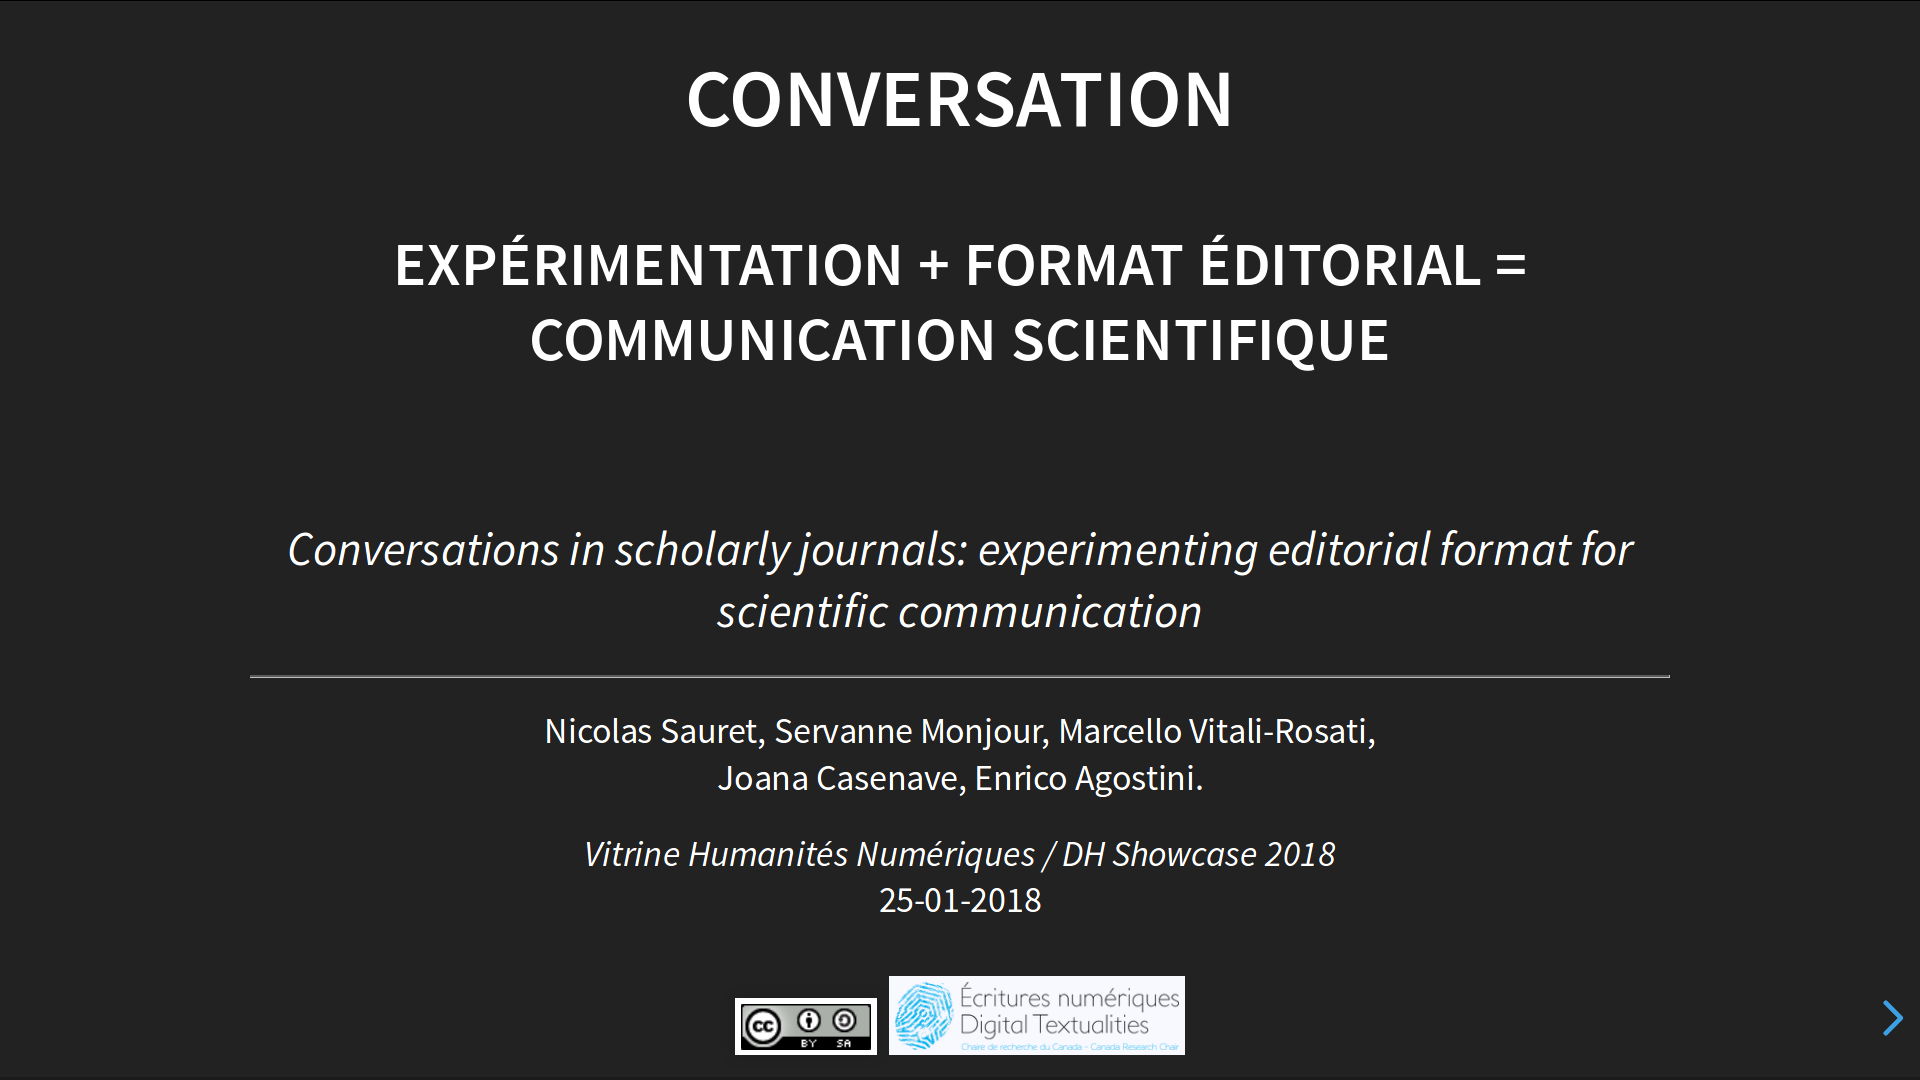 Slide1 - Conversation : expérimentation + format éditorial = communication scientifique